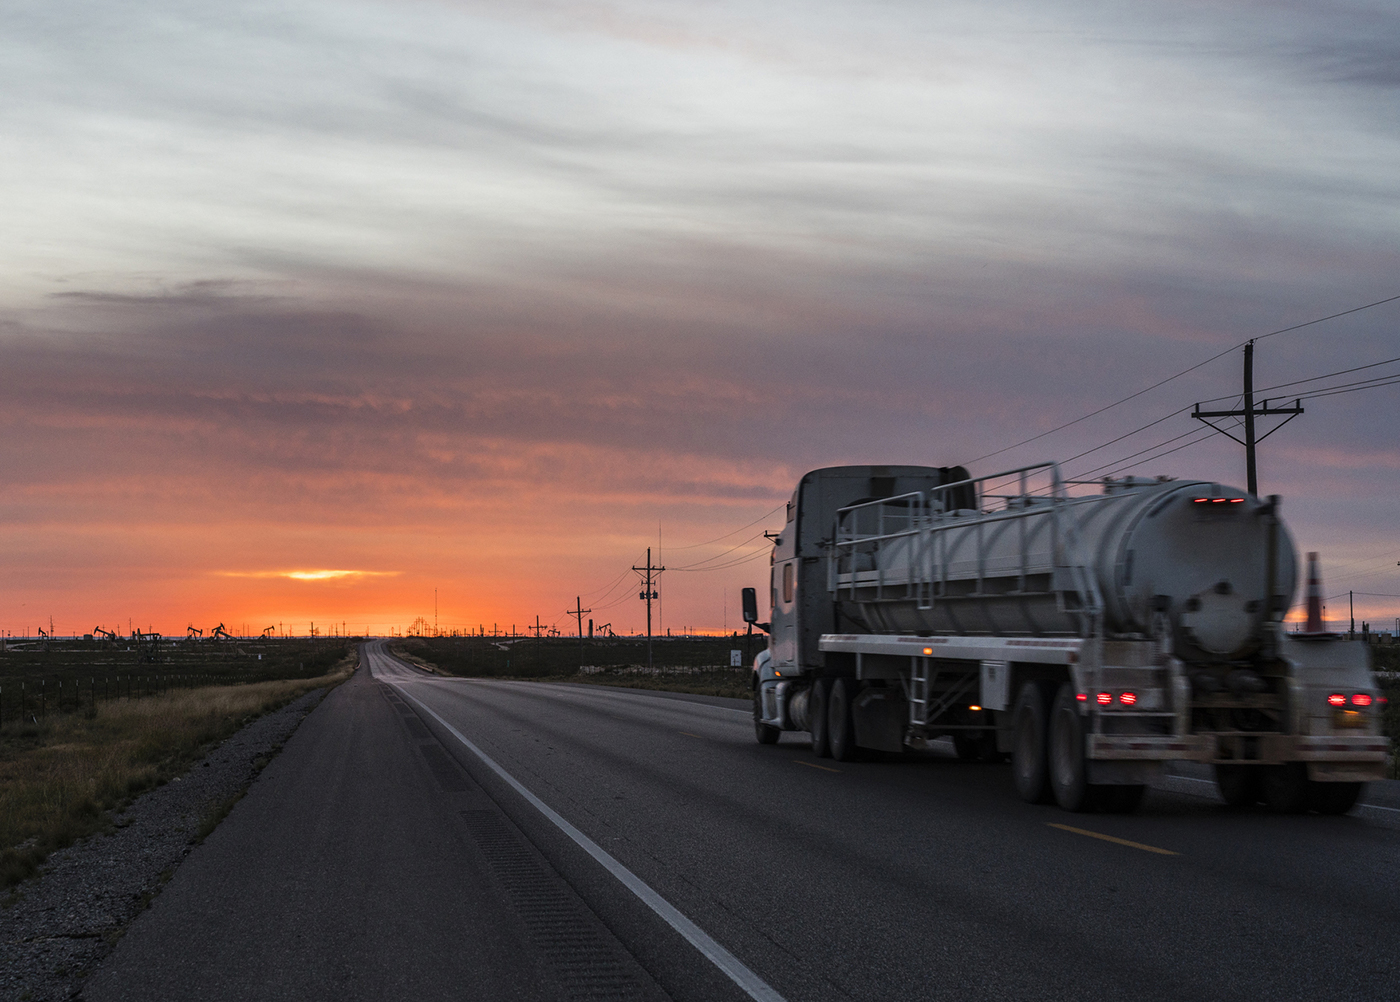 An oilfield truck driving in the sunset on a road in the Permian Basin